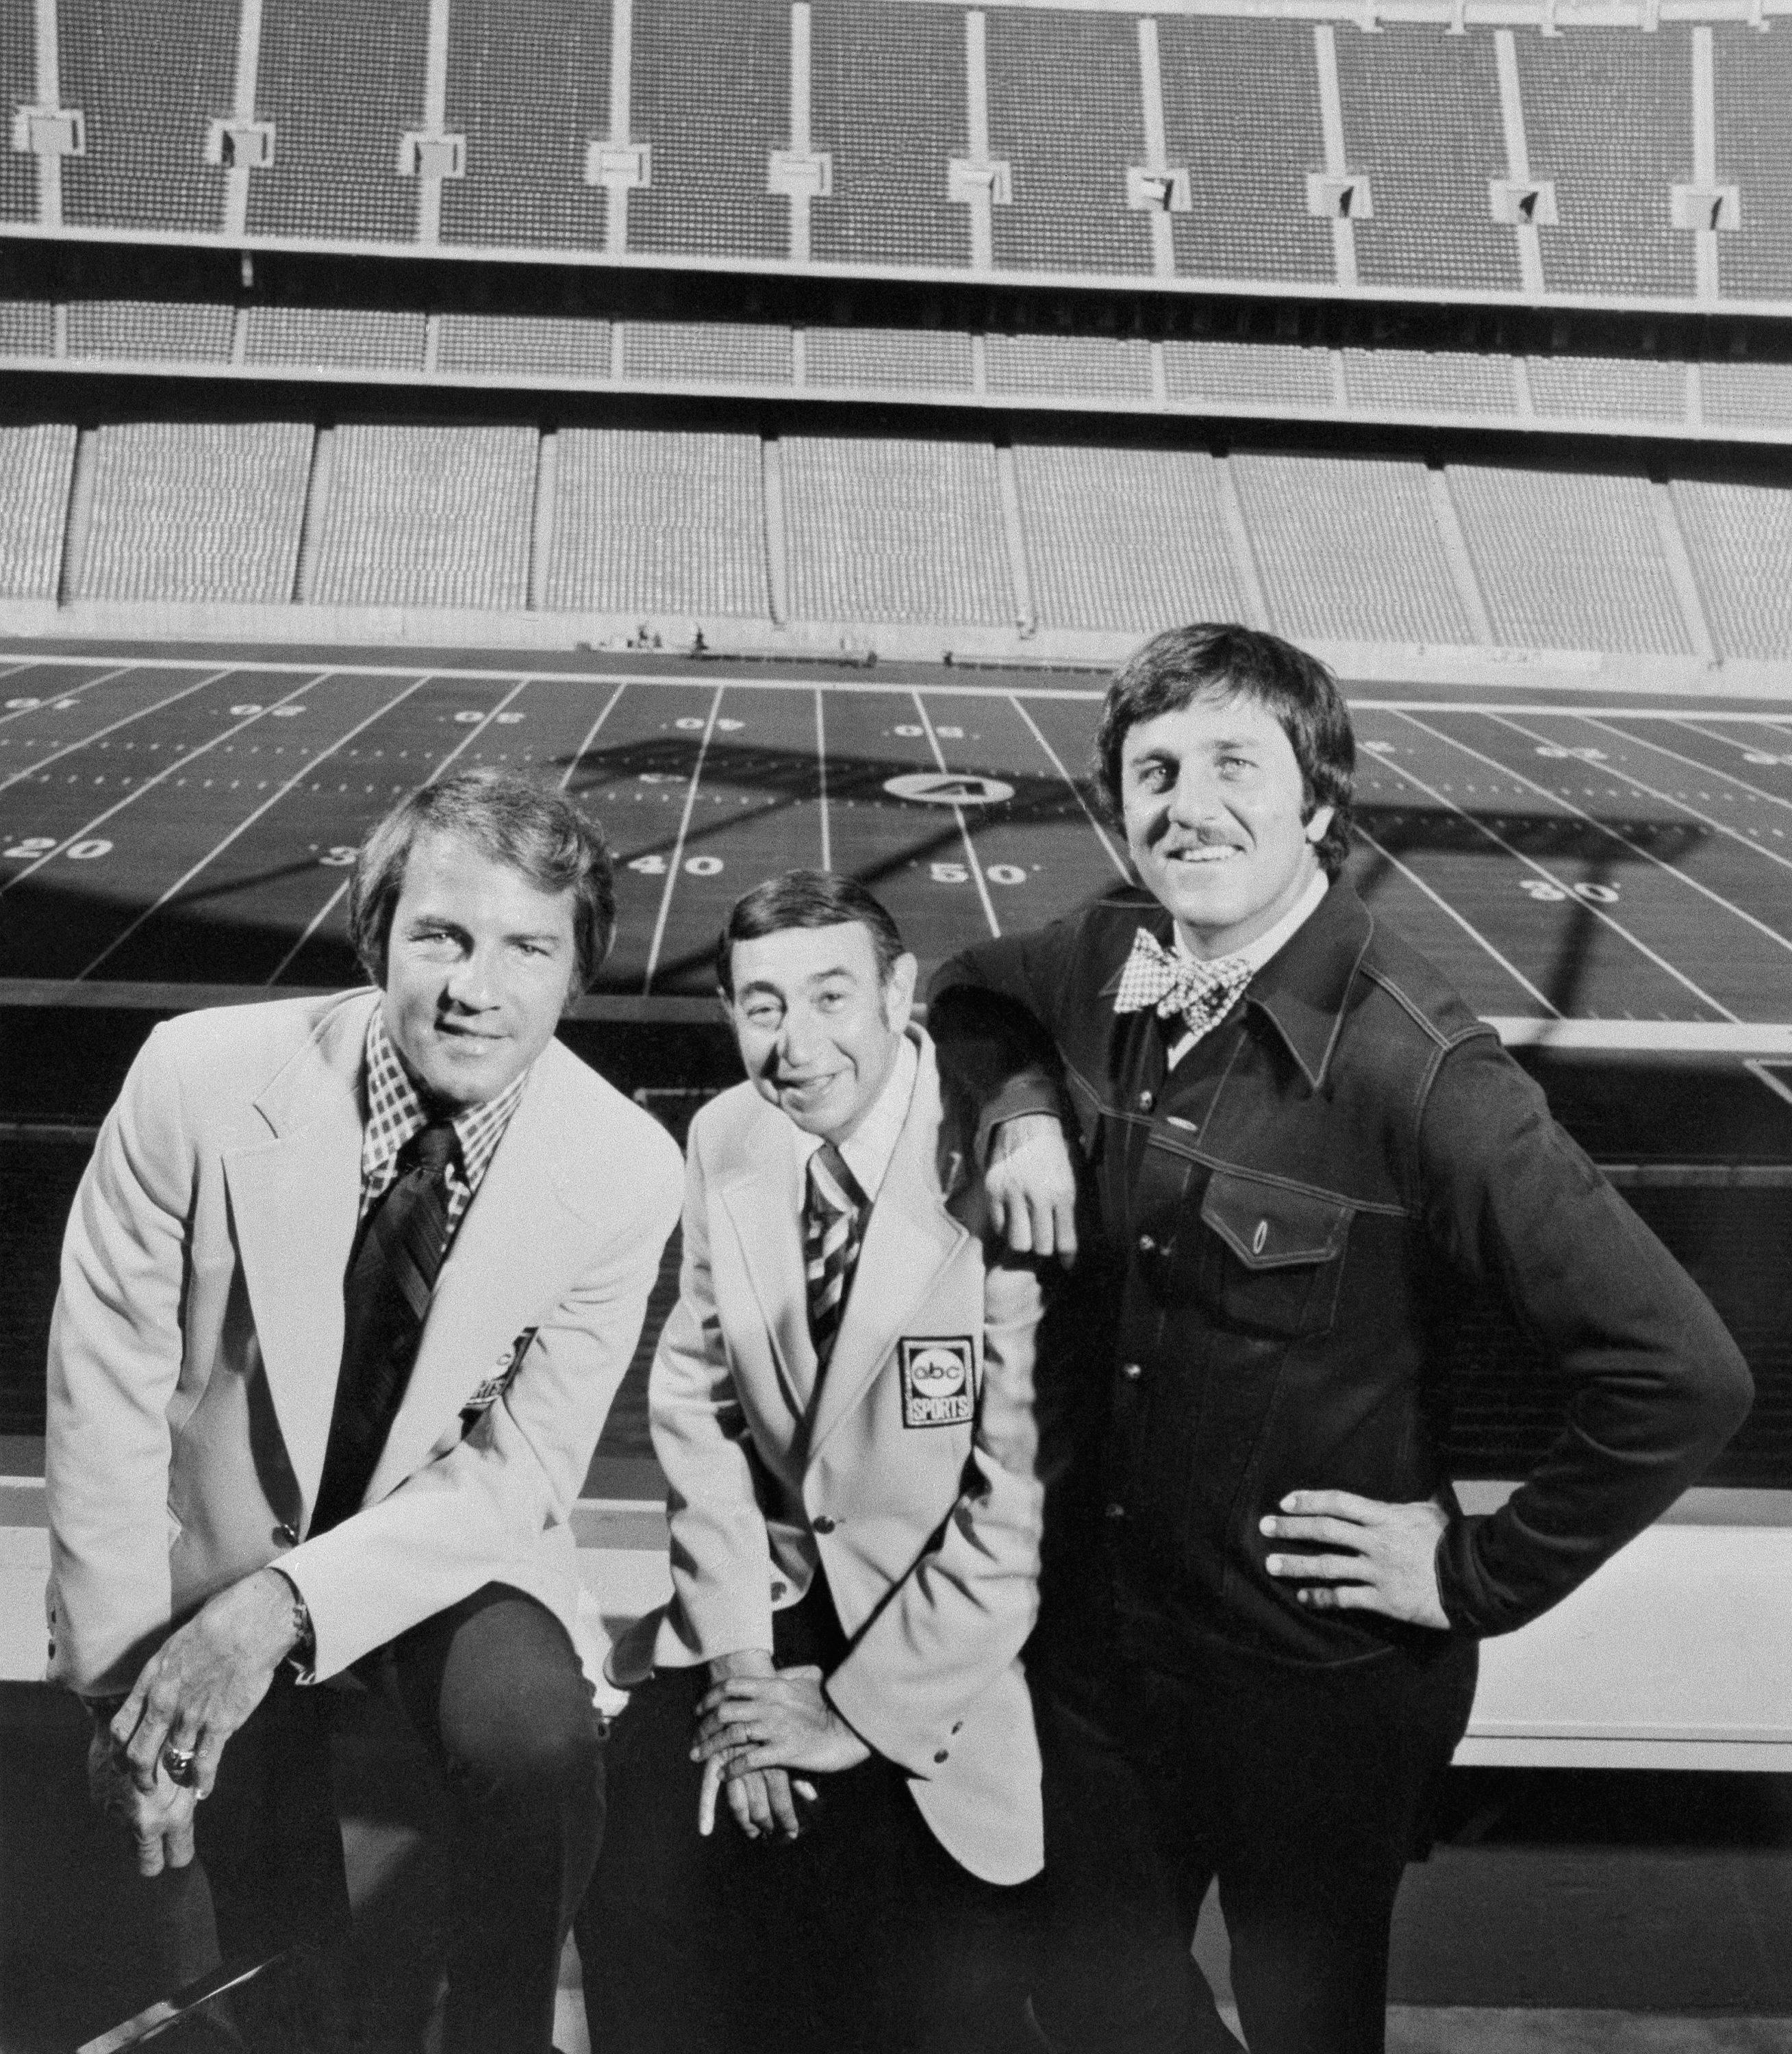 This Nov. 20, 1973, photo provided by ABC-TV shows, from left, Frank Gifford, Howard Cosell and Don Meredith.